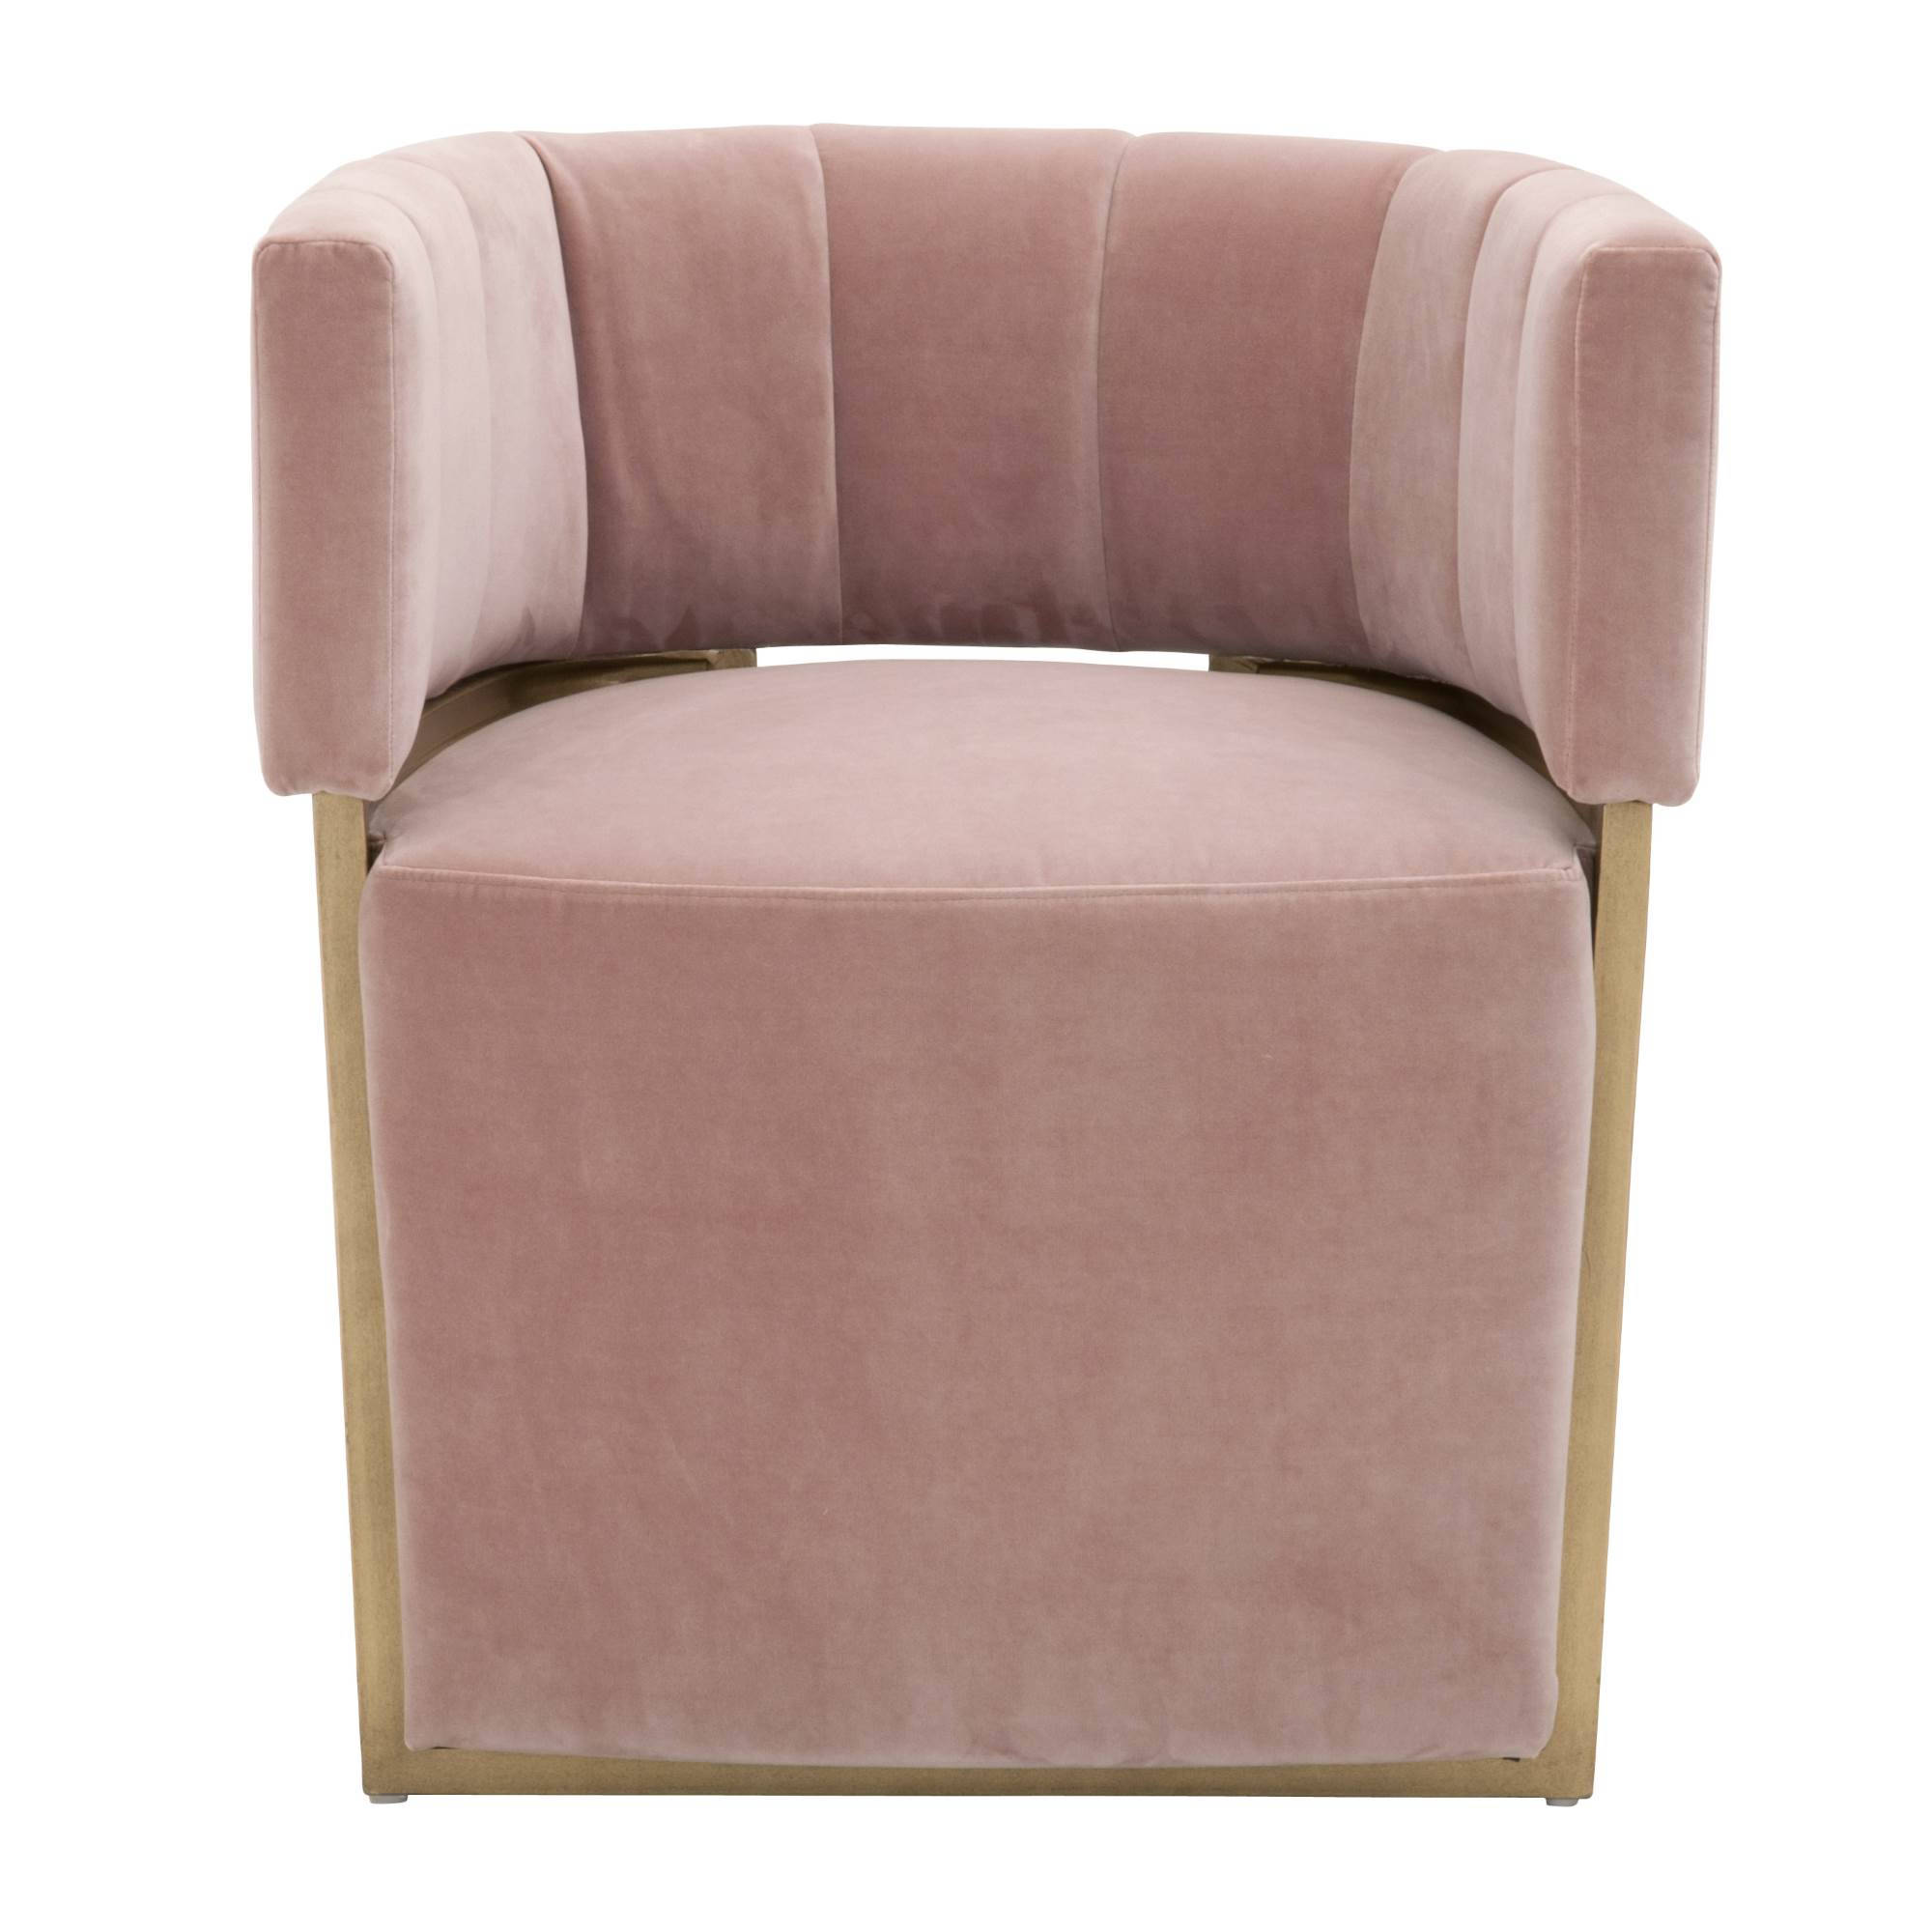 Blush Pink Accent Chairs.Essentials For Living Nova Blush Pink Accent Chair The Classy Home